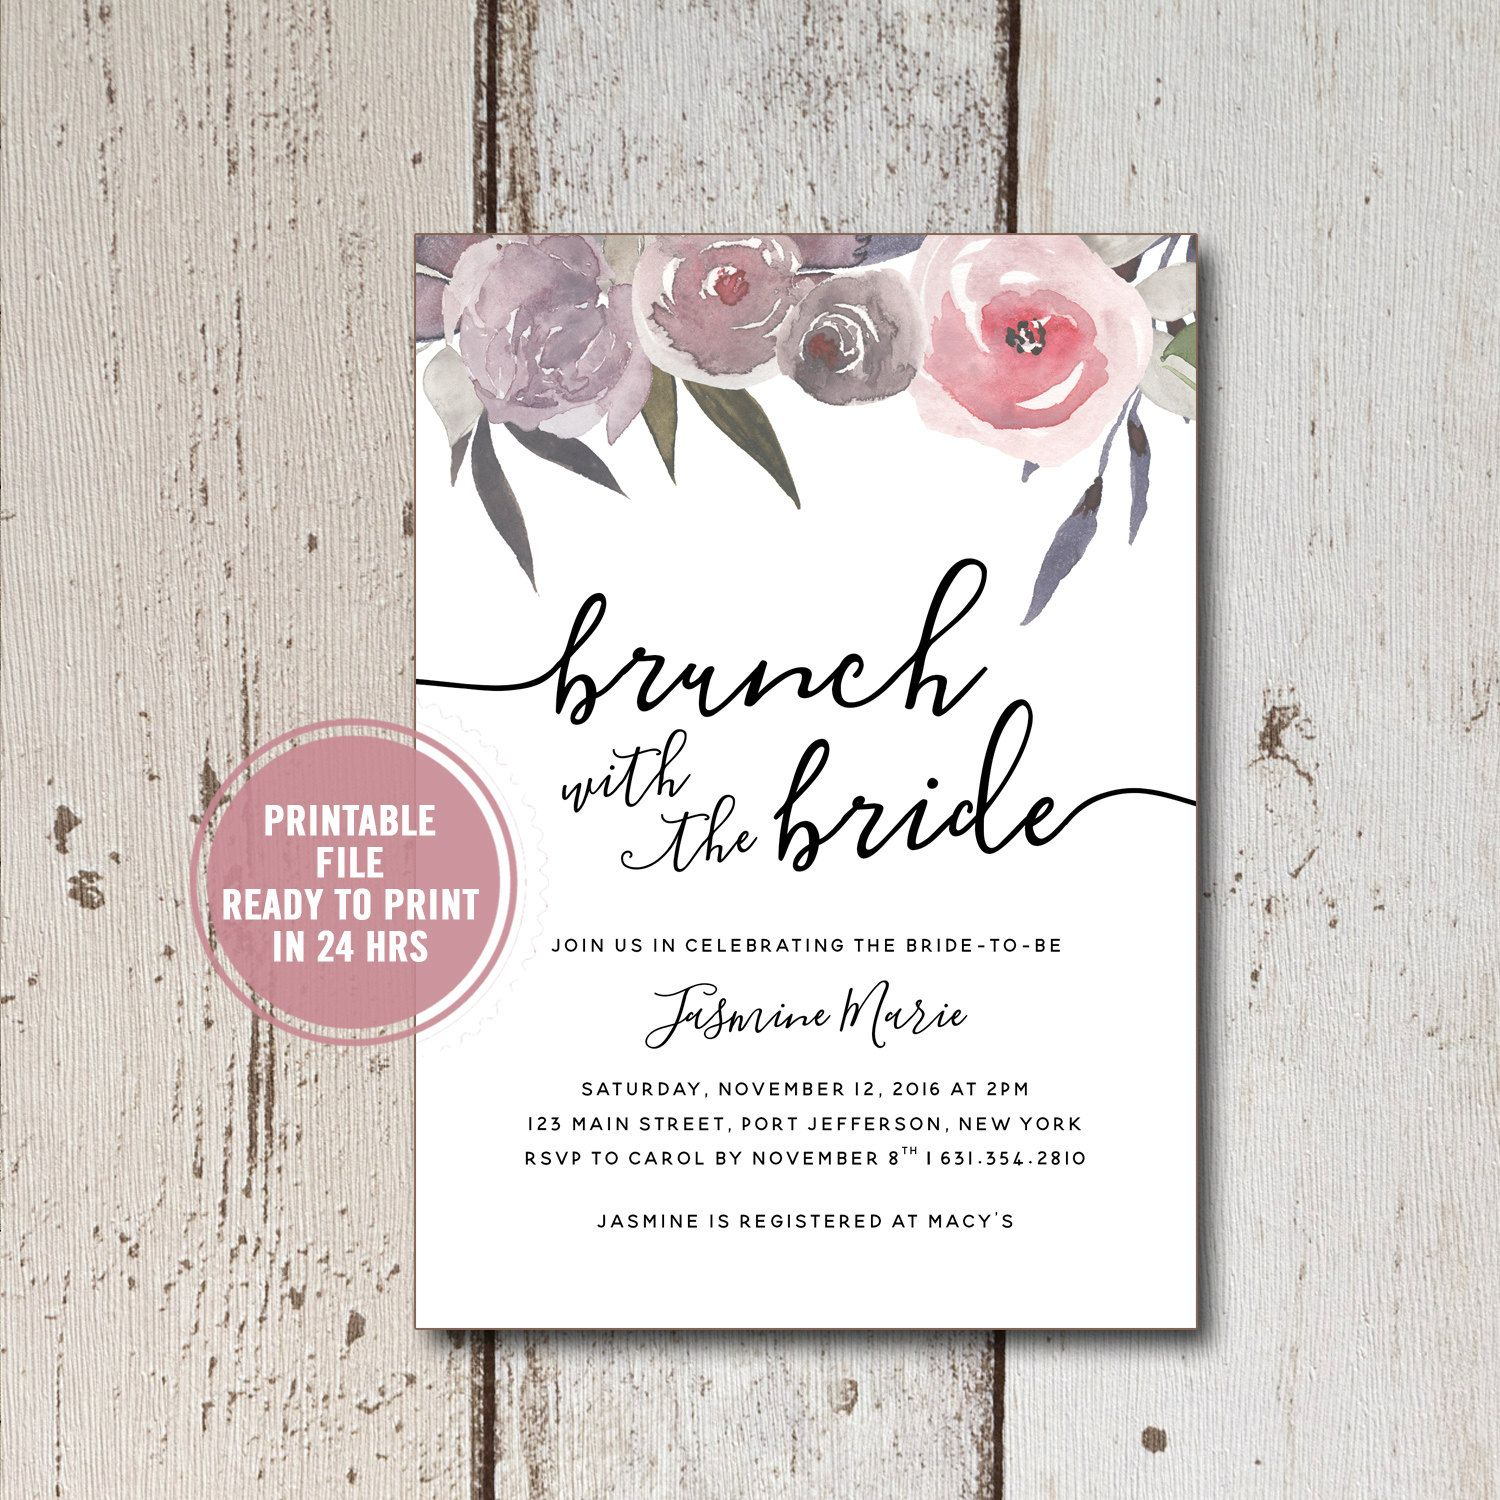 Bridal Shower Invitation, Brunch with the Bride Invitation, Rustic Bridal Shower Invitation,Floral Bridal Shower Invitation Instant Download by ShadesOfGrace1 on Etsy